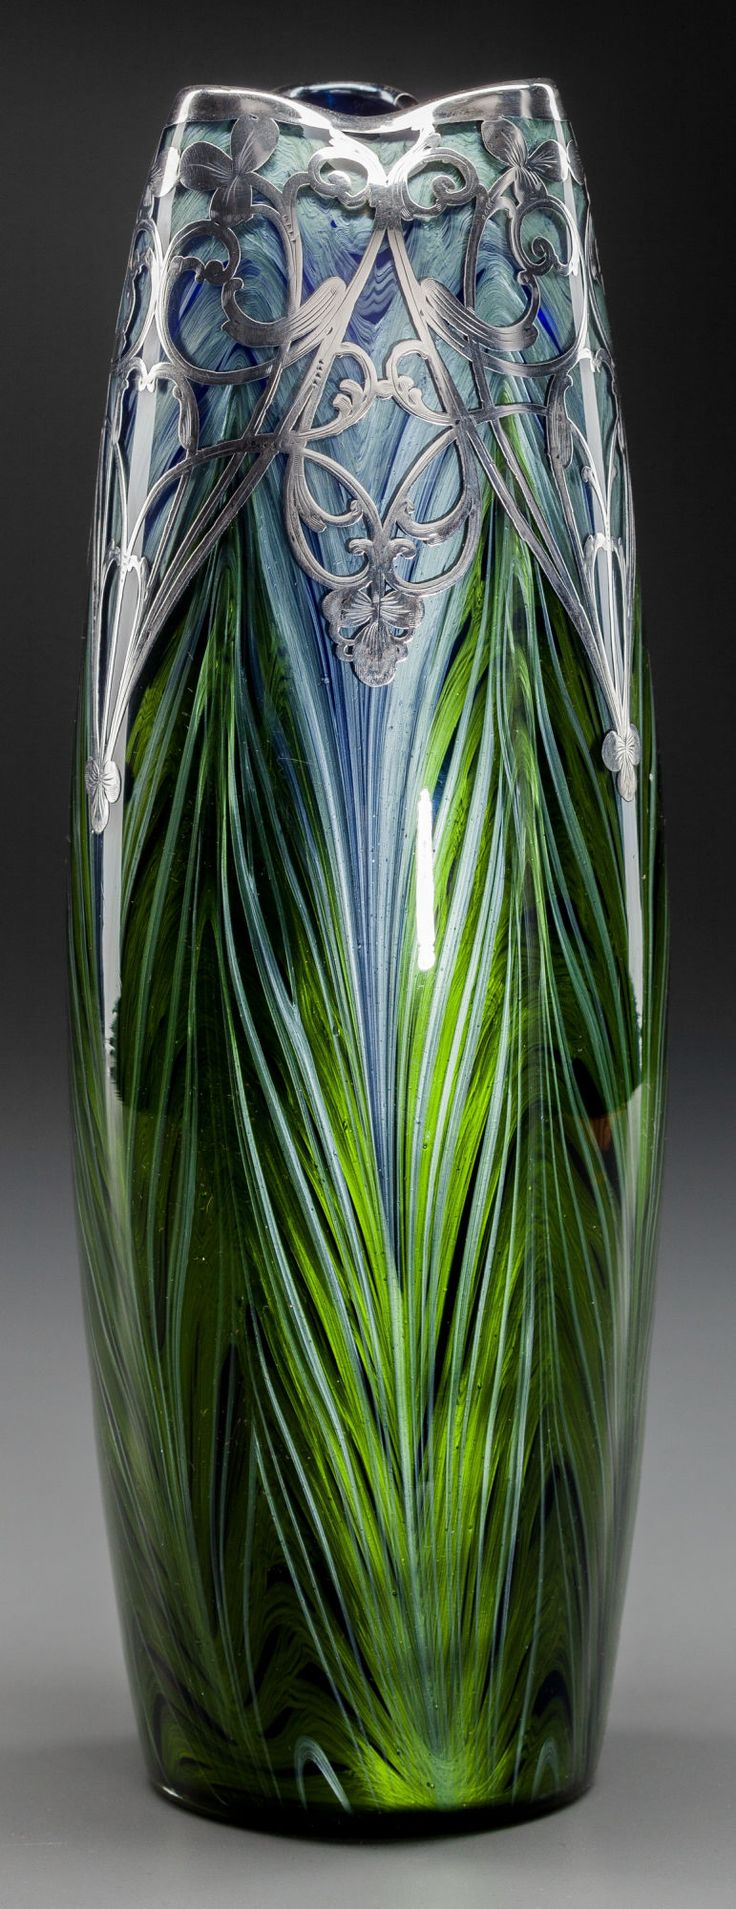 LOETZ IRIDESCENT FEATHER PULL GLASS VASE WITH SILVER OVERLAY,Klostermuhle, Austria, circa 1905. Marks: STERLING